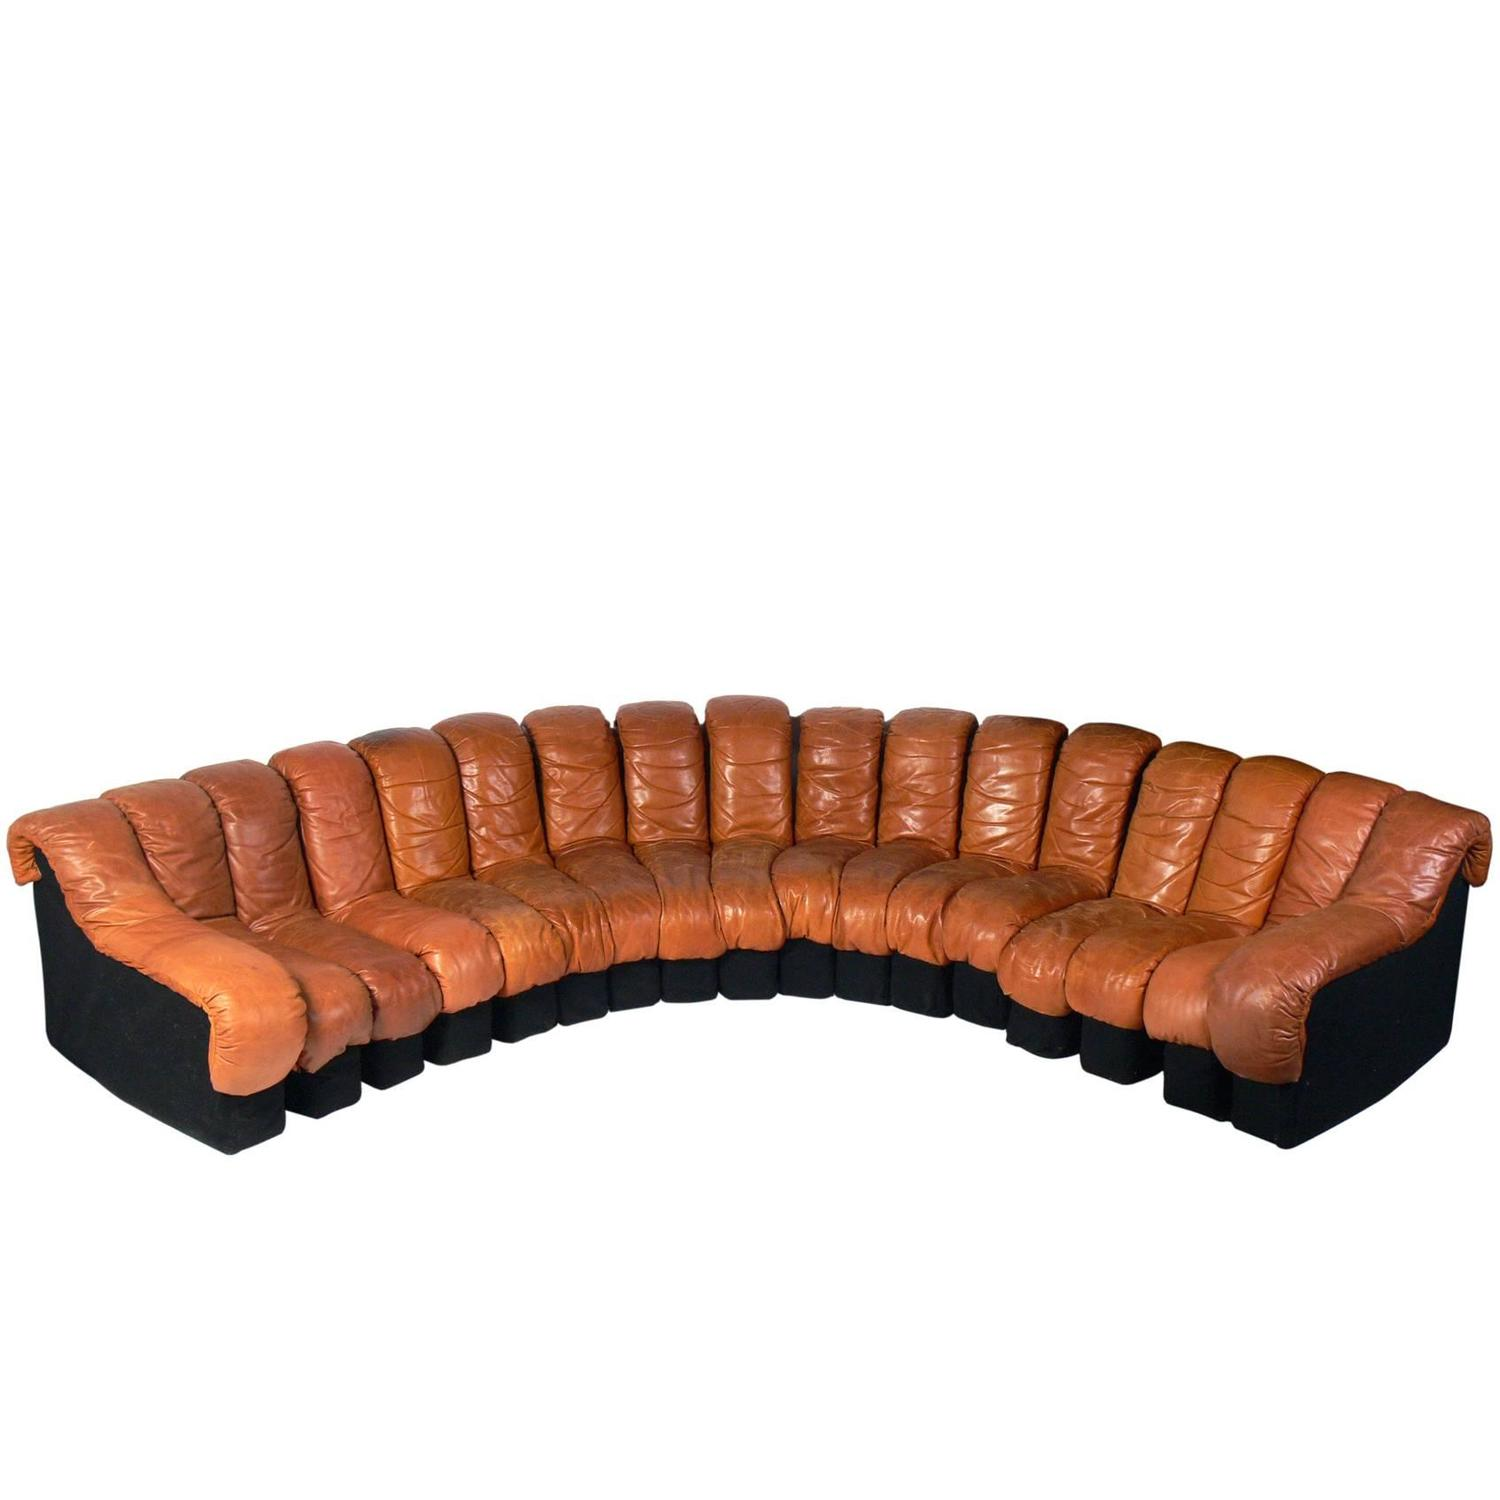 "De Sede ""Non Stop"" Leather Sectional Sofa at 1stdibs"